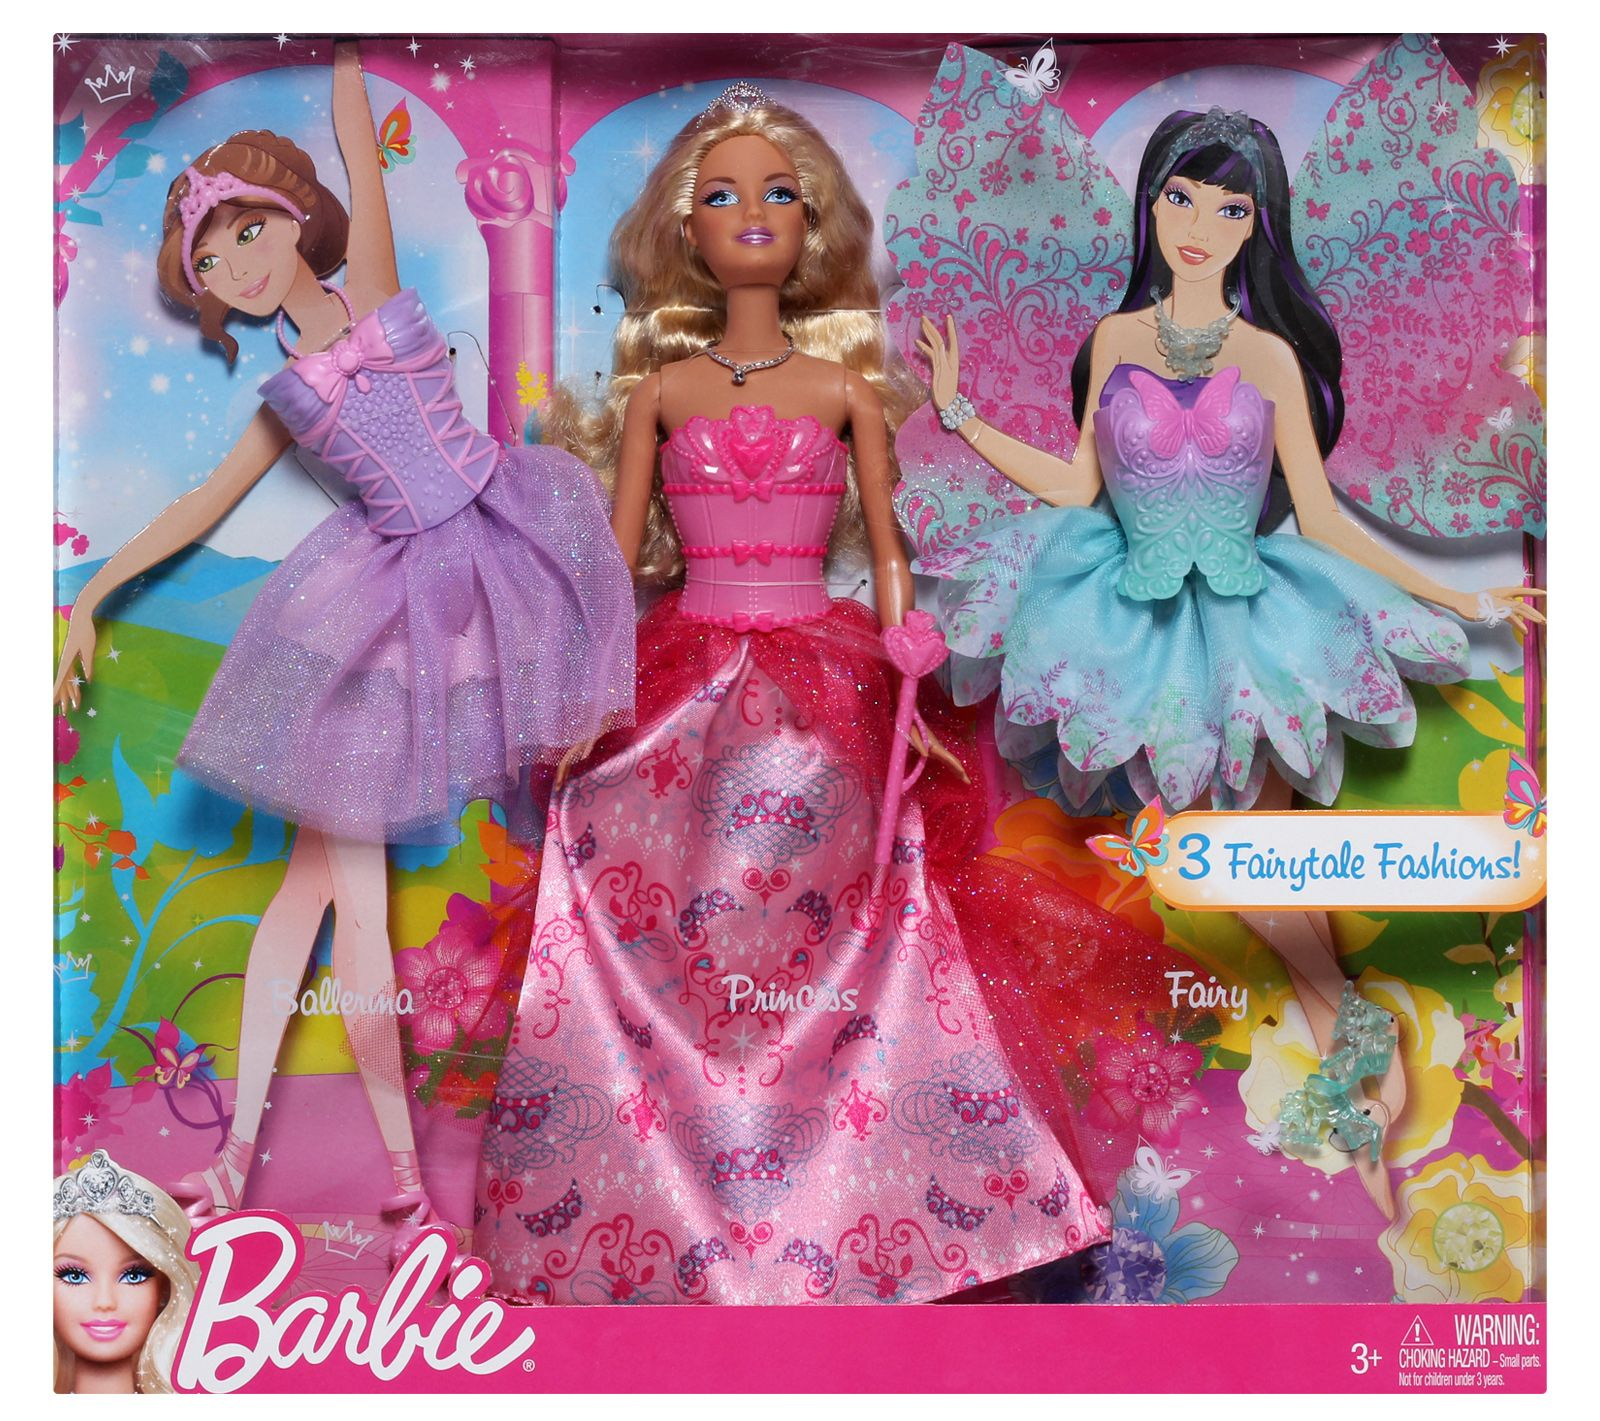 Barbie A Fashion Fairytale Game Barbie Games Fashion Fairytale